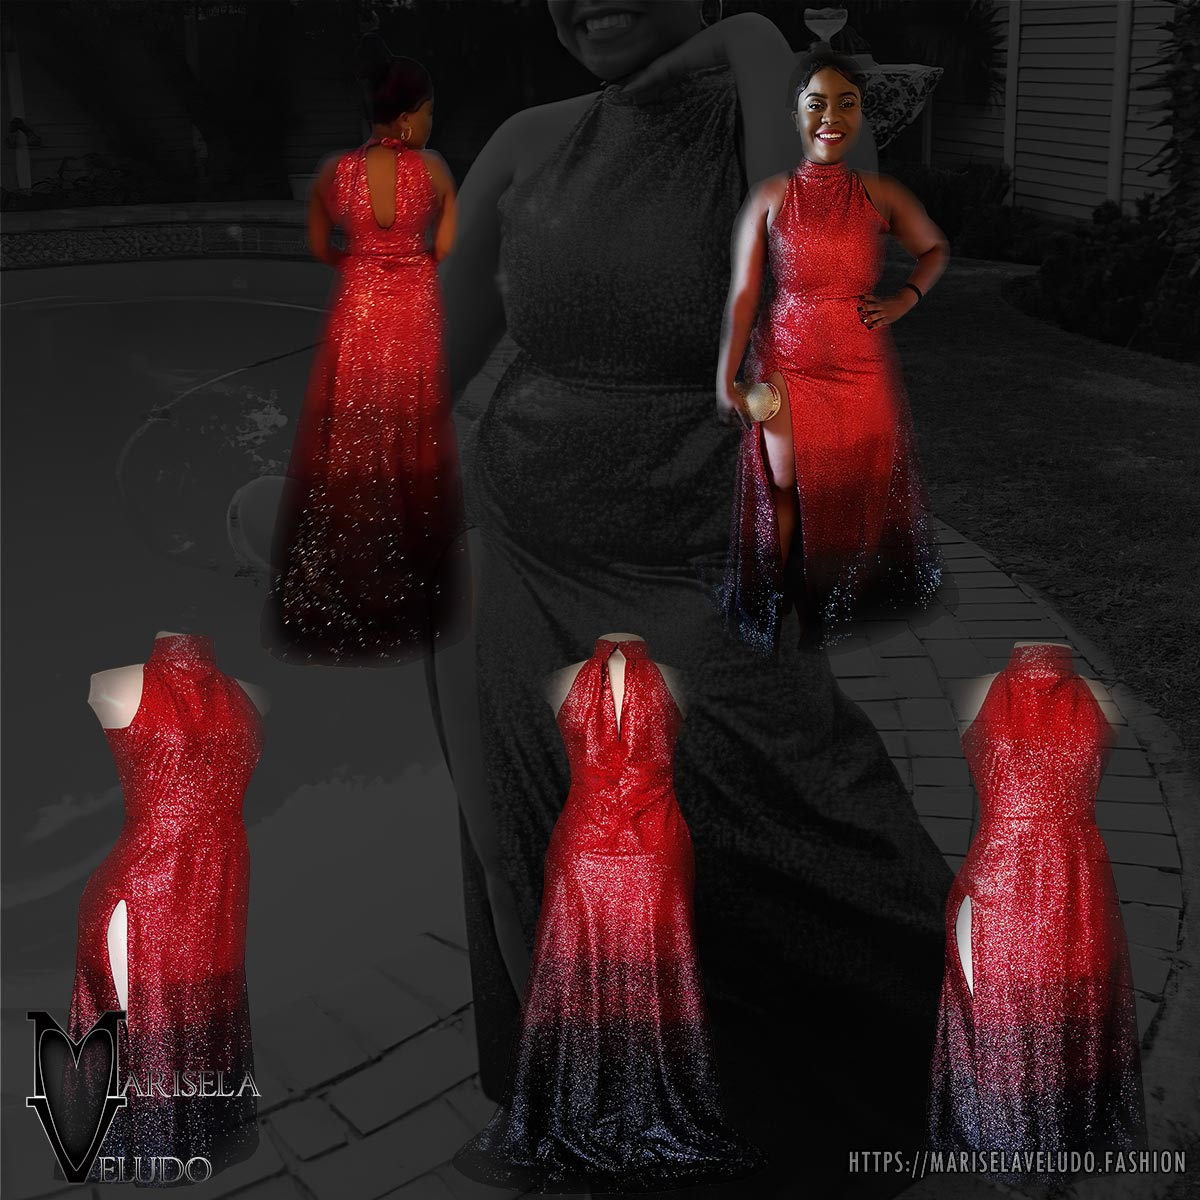 Glittered red and black ombre evening dress 12 want to be the shine at your prom gala? Wear a stunning fully glitter red and black ombre evening dress. With a high slit for a touch of sexy to your radical look.